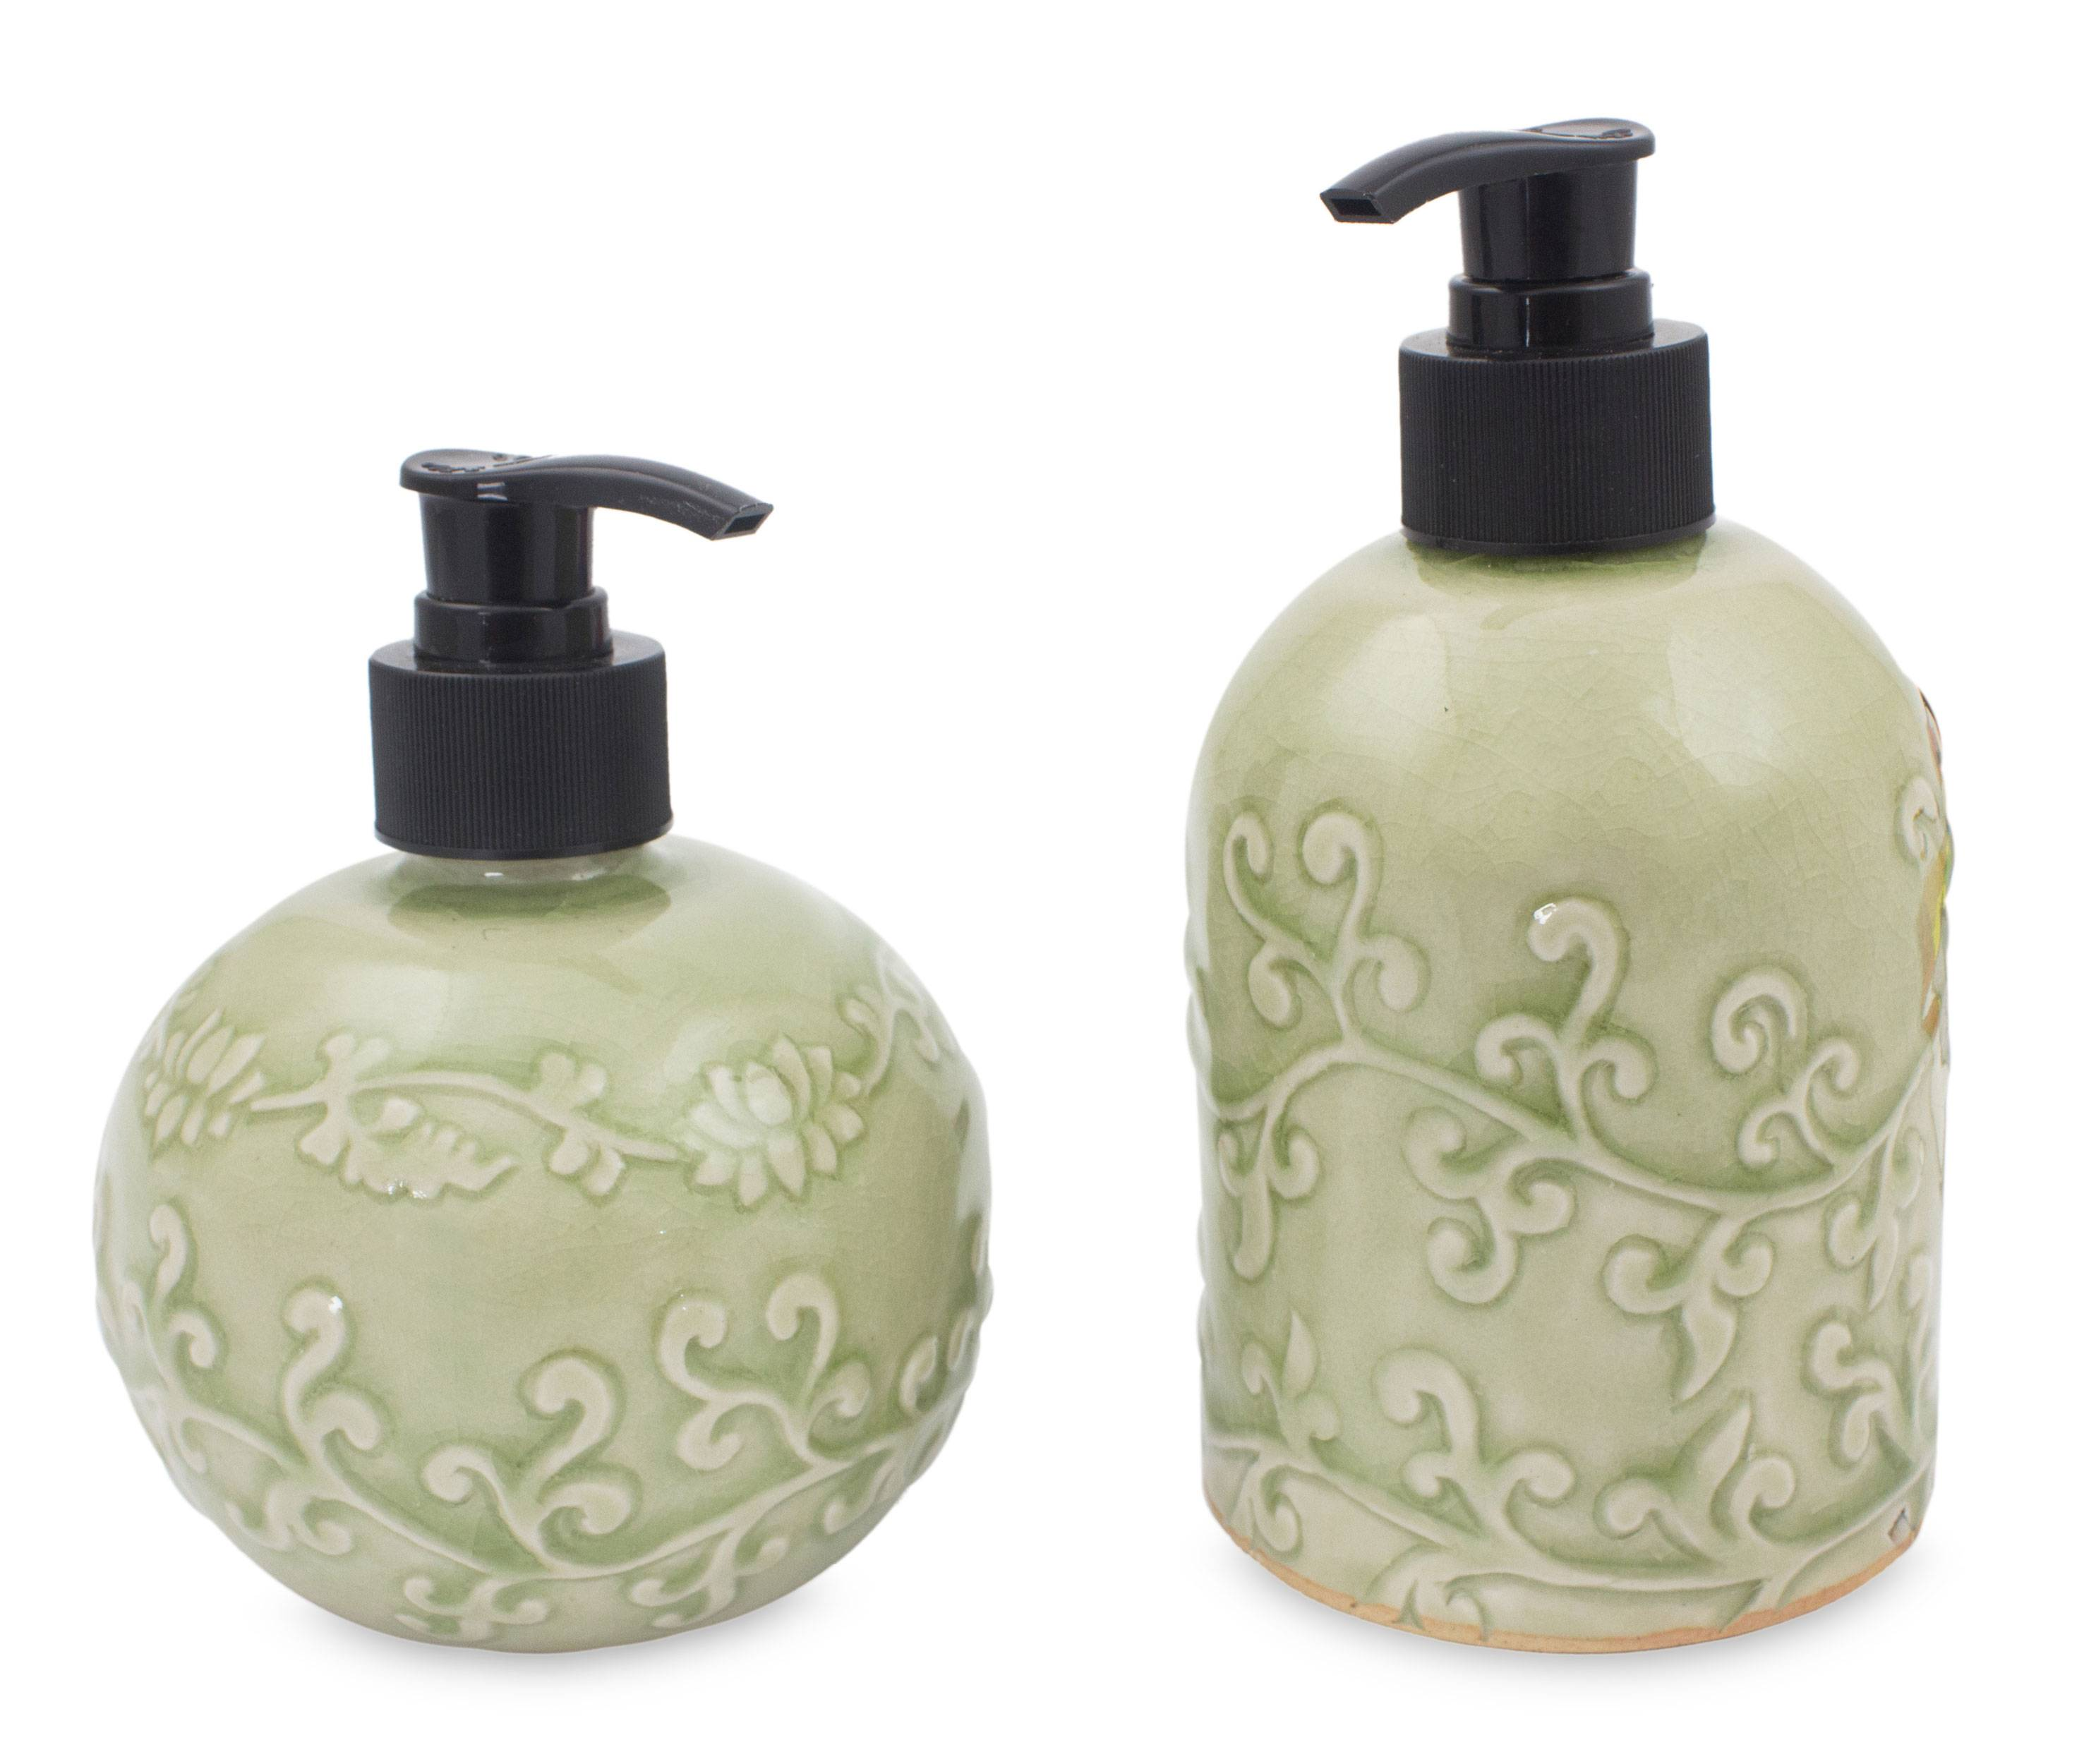 green celadon ceramic liquid soap dispensers pair jade floral novica